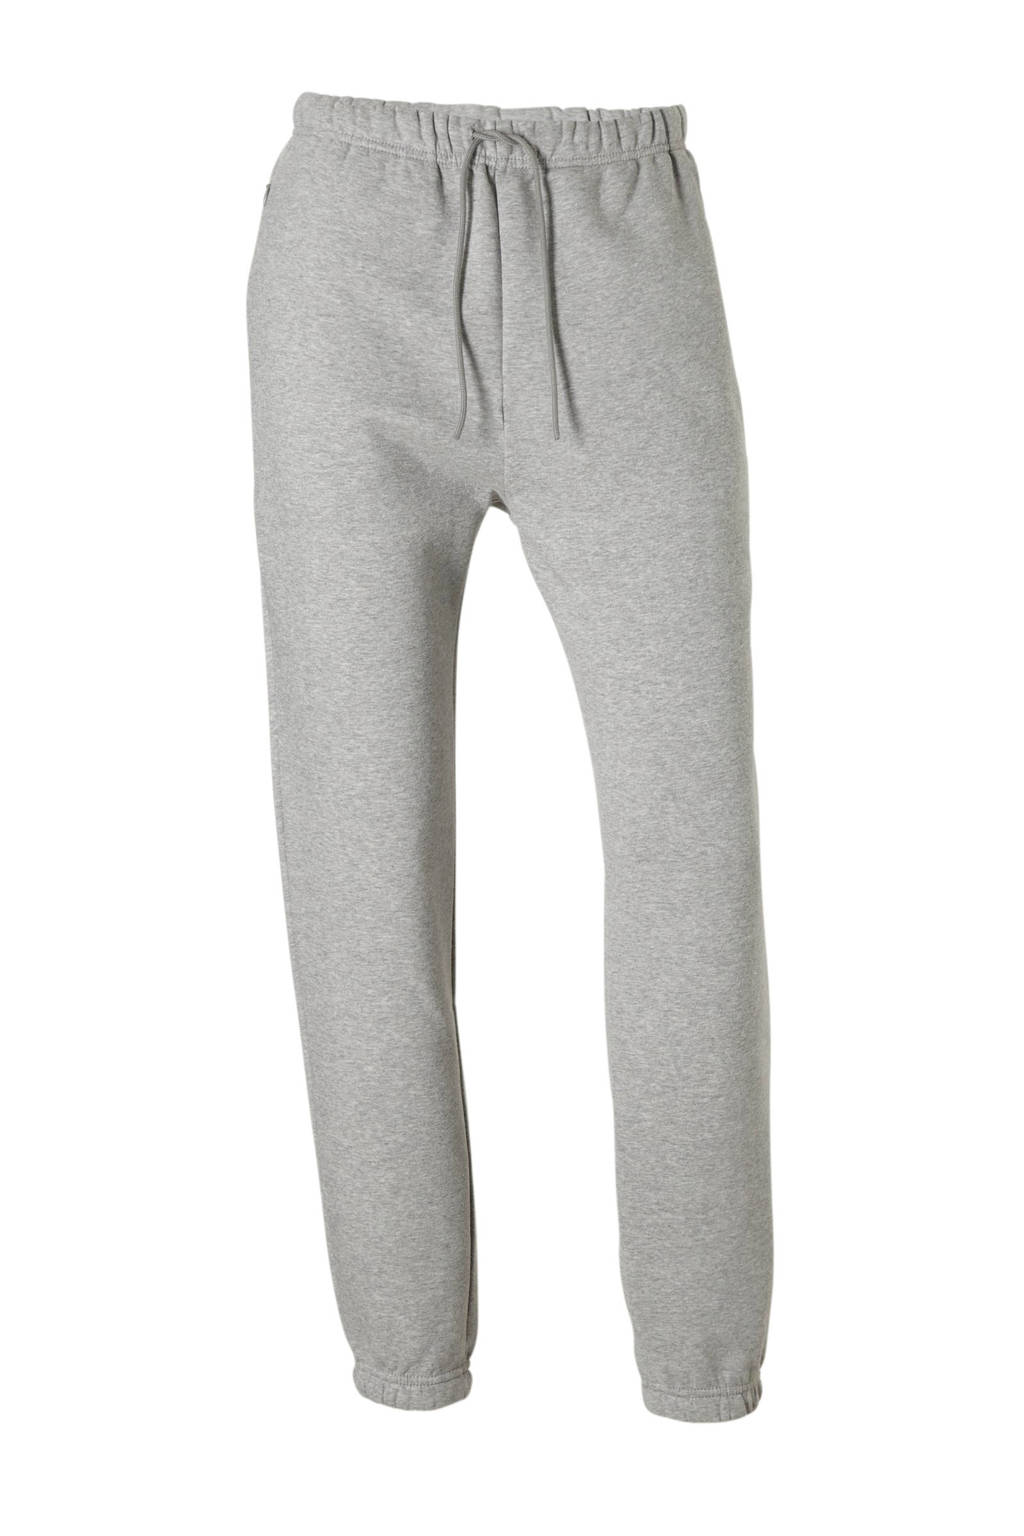 adidas originals joggingbroek grijs, Grijs/wit